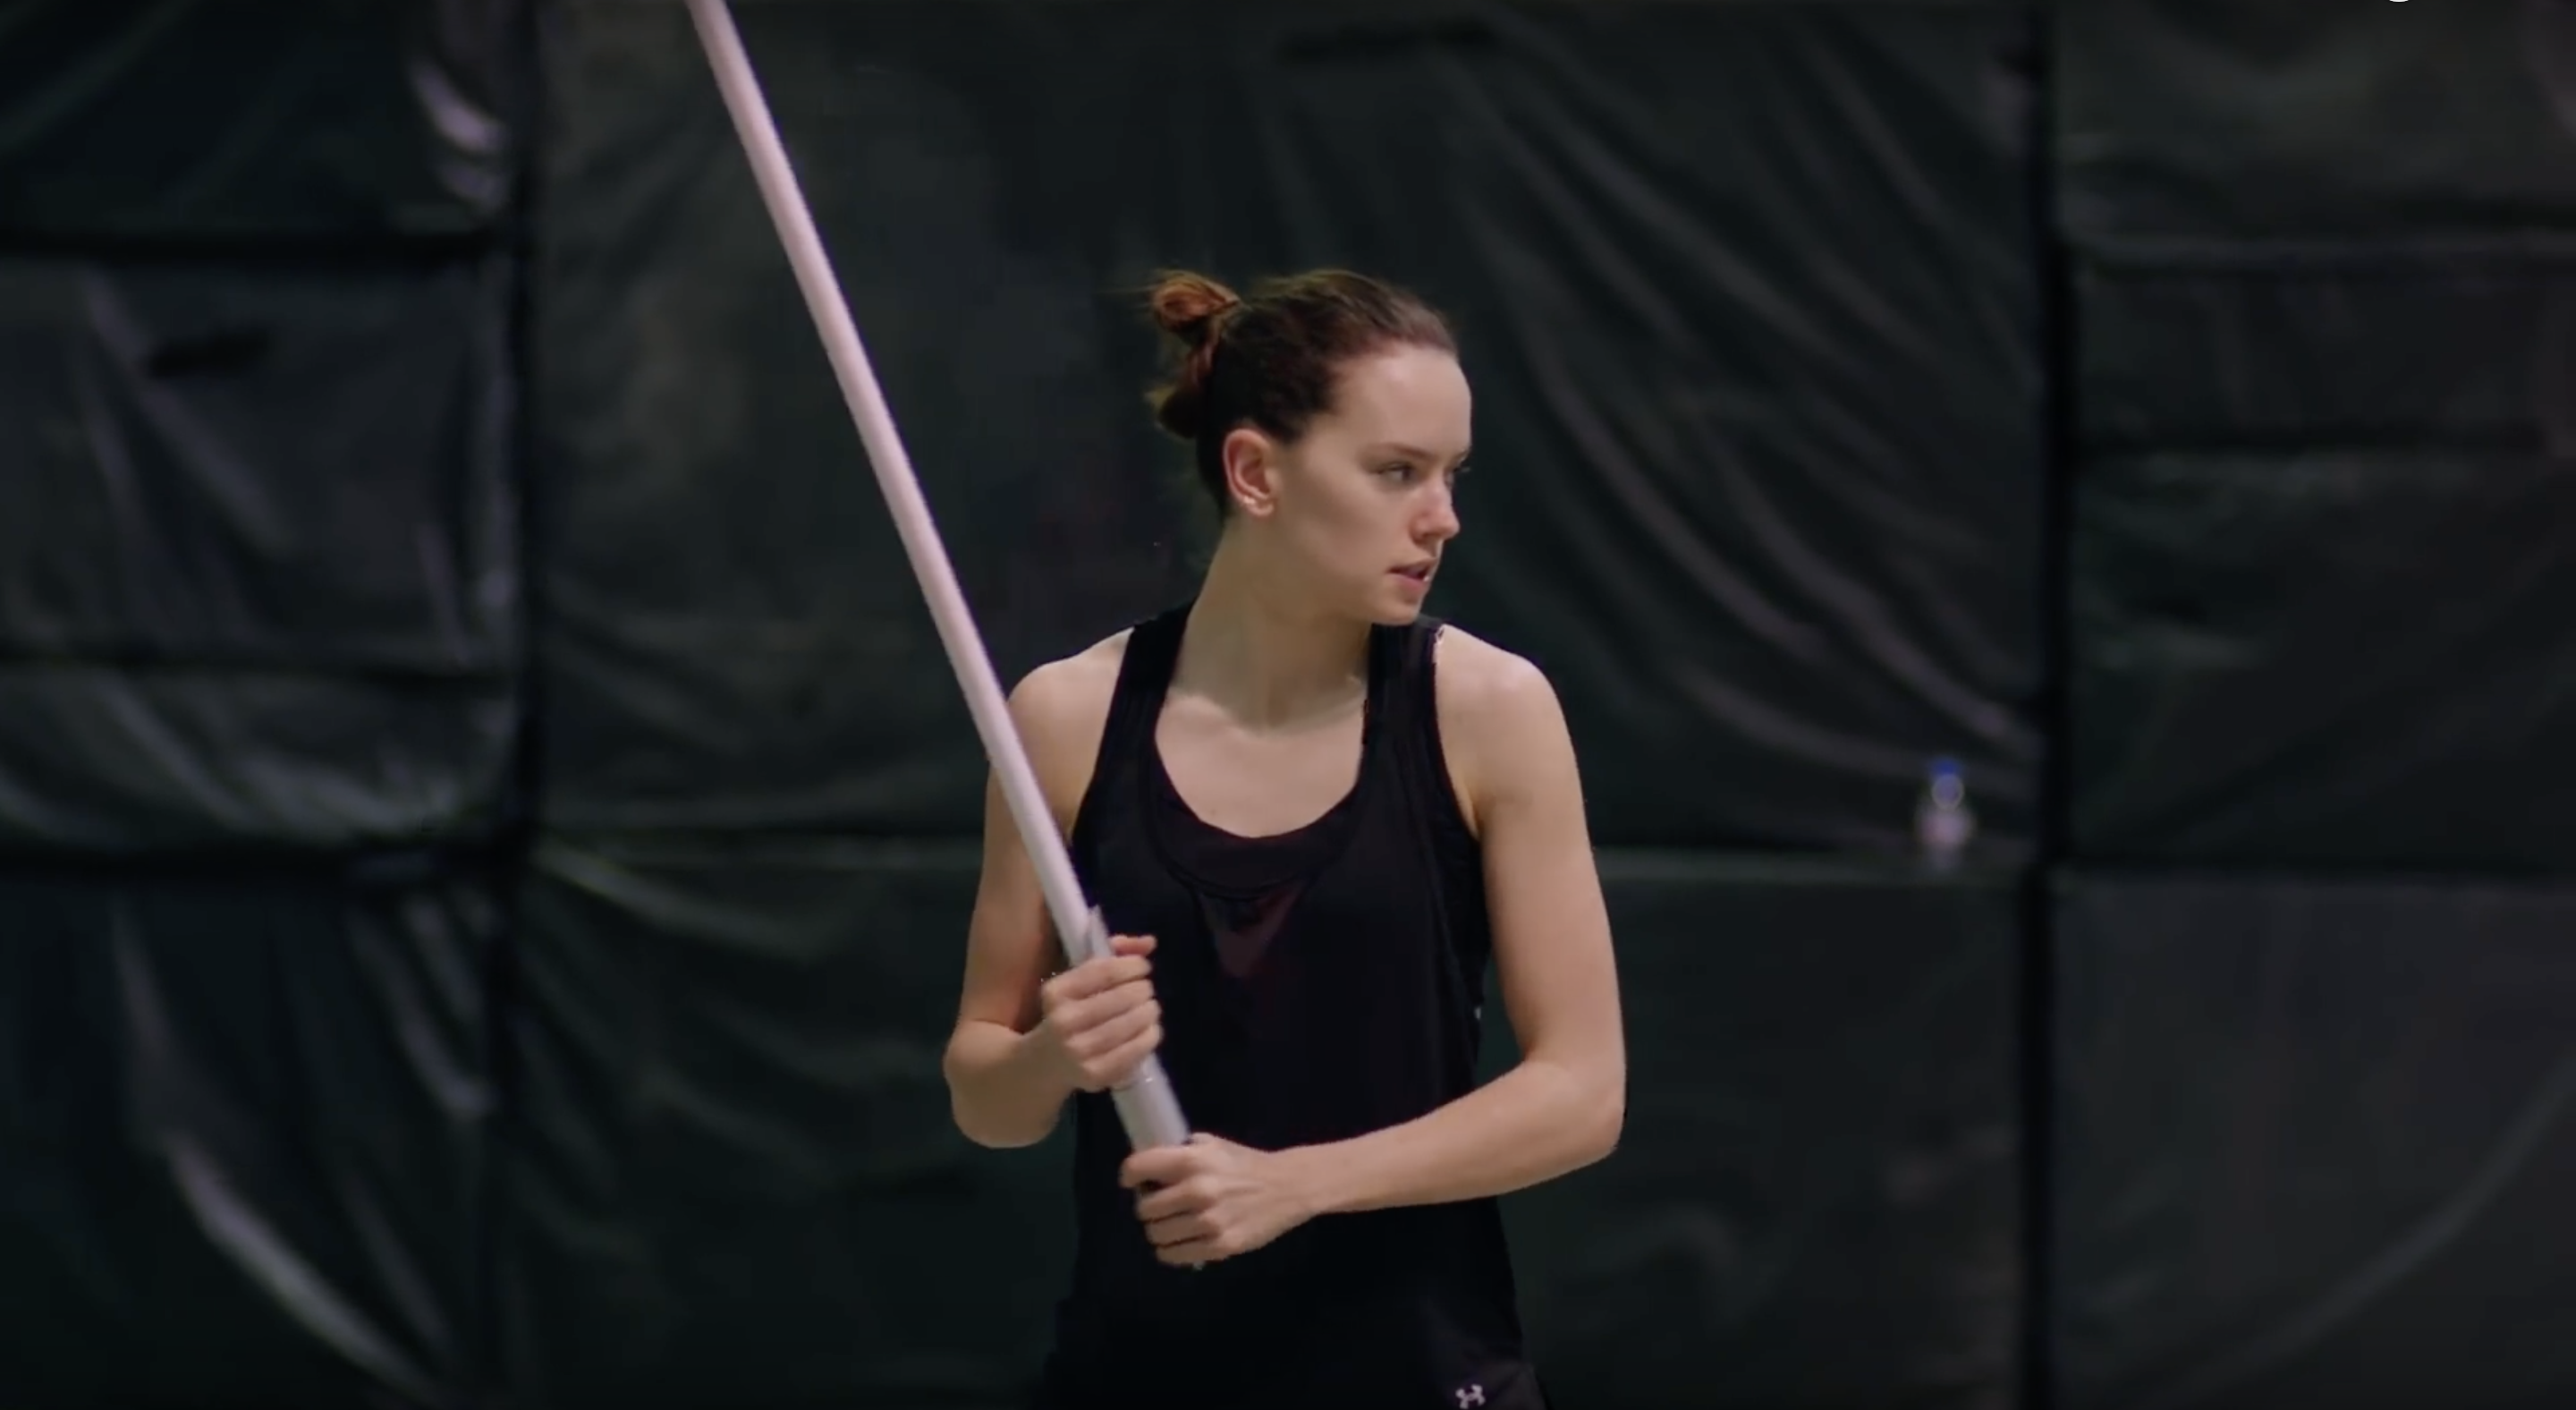 Star Wars: The Last Jedi - Daisy Ridley - Training Day